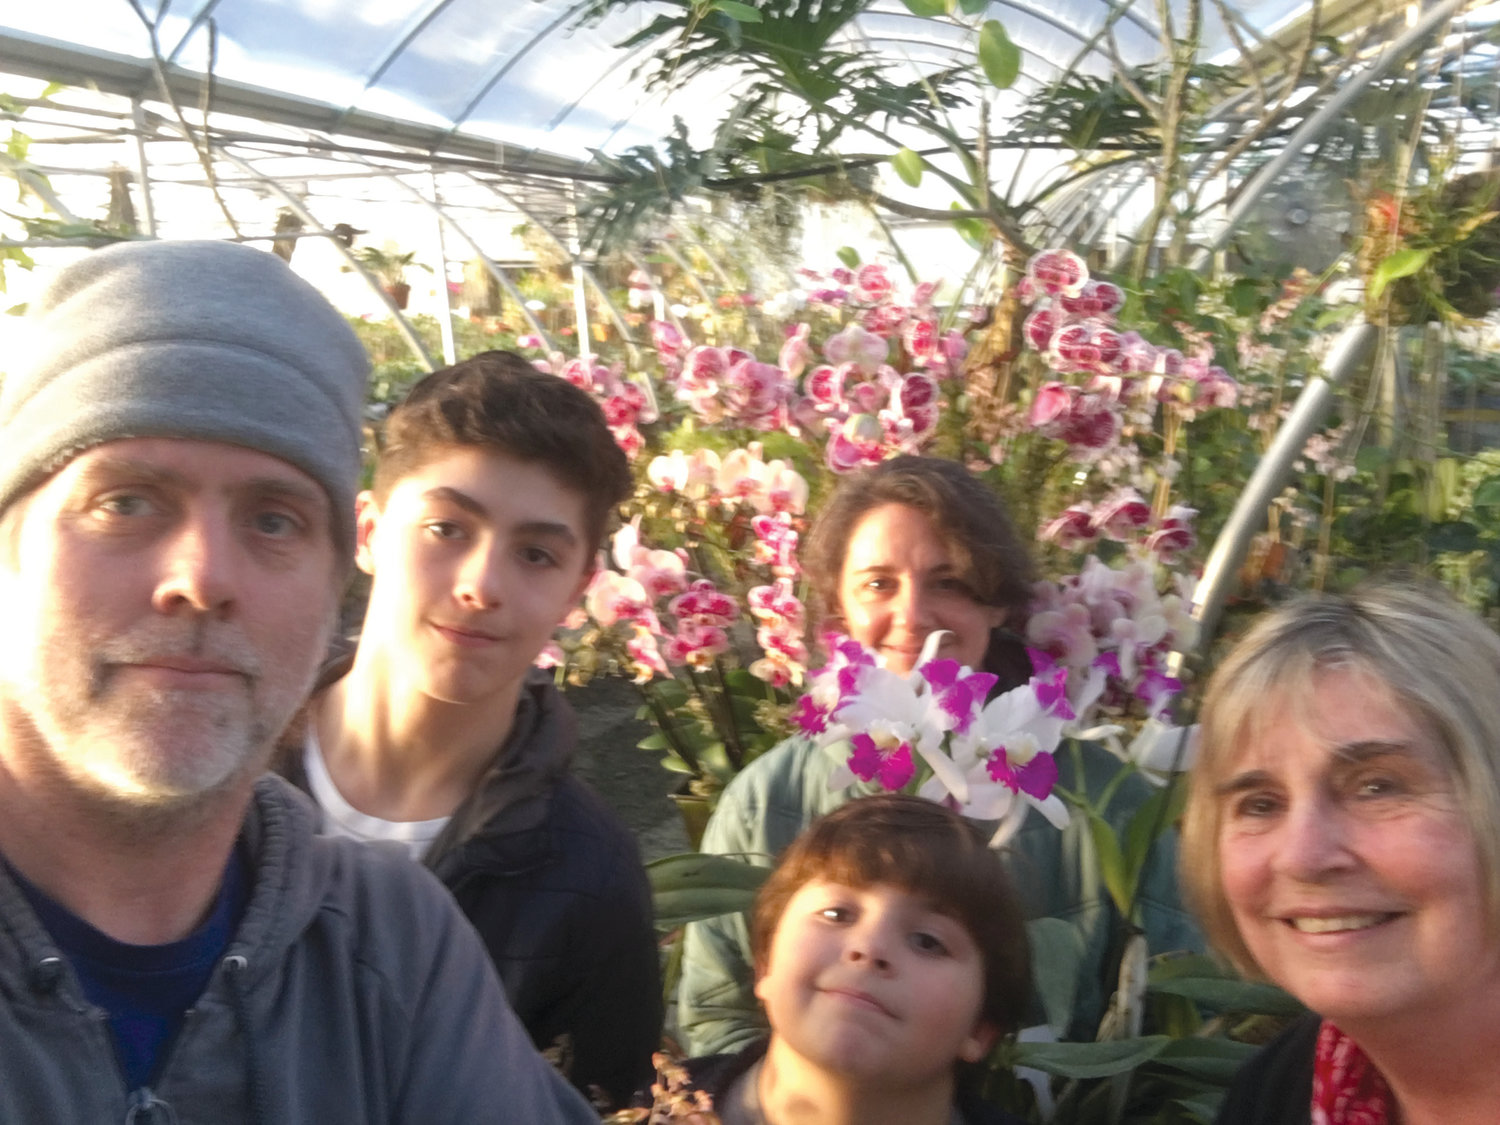 The Baldwin family is a busy crew, but they managed to get them all together for a photo in the greenhouse. From left: Jeff Baldwin, Otto Baldwin, Lucas Baldwin (bottom), Agustina Baldwin, and Rita Baldwin.